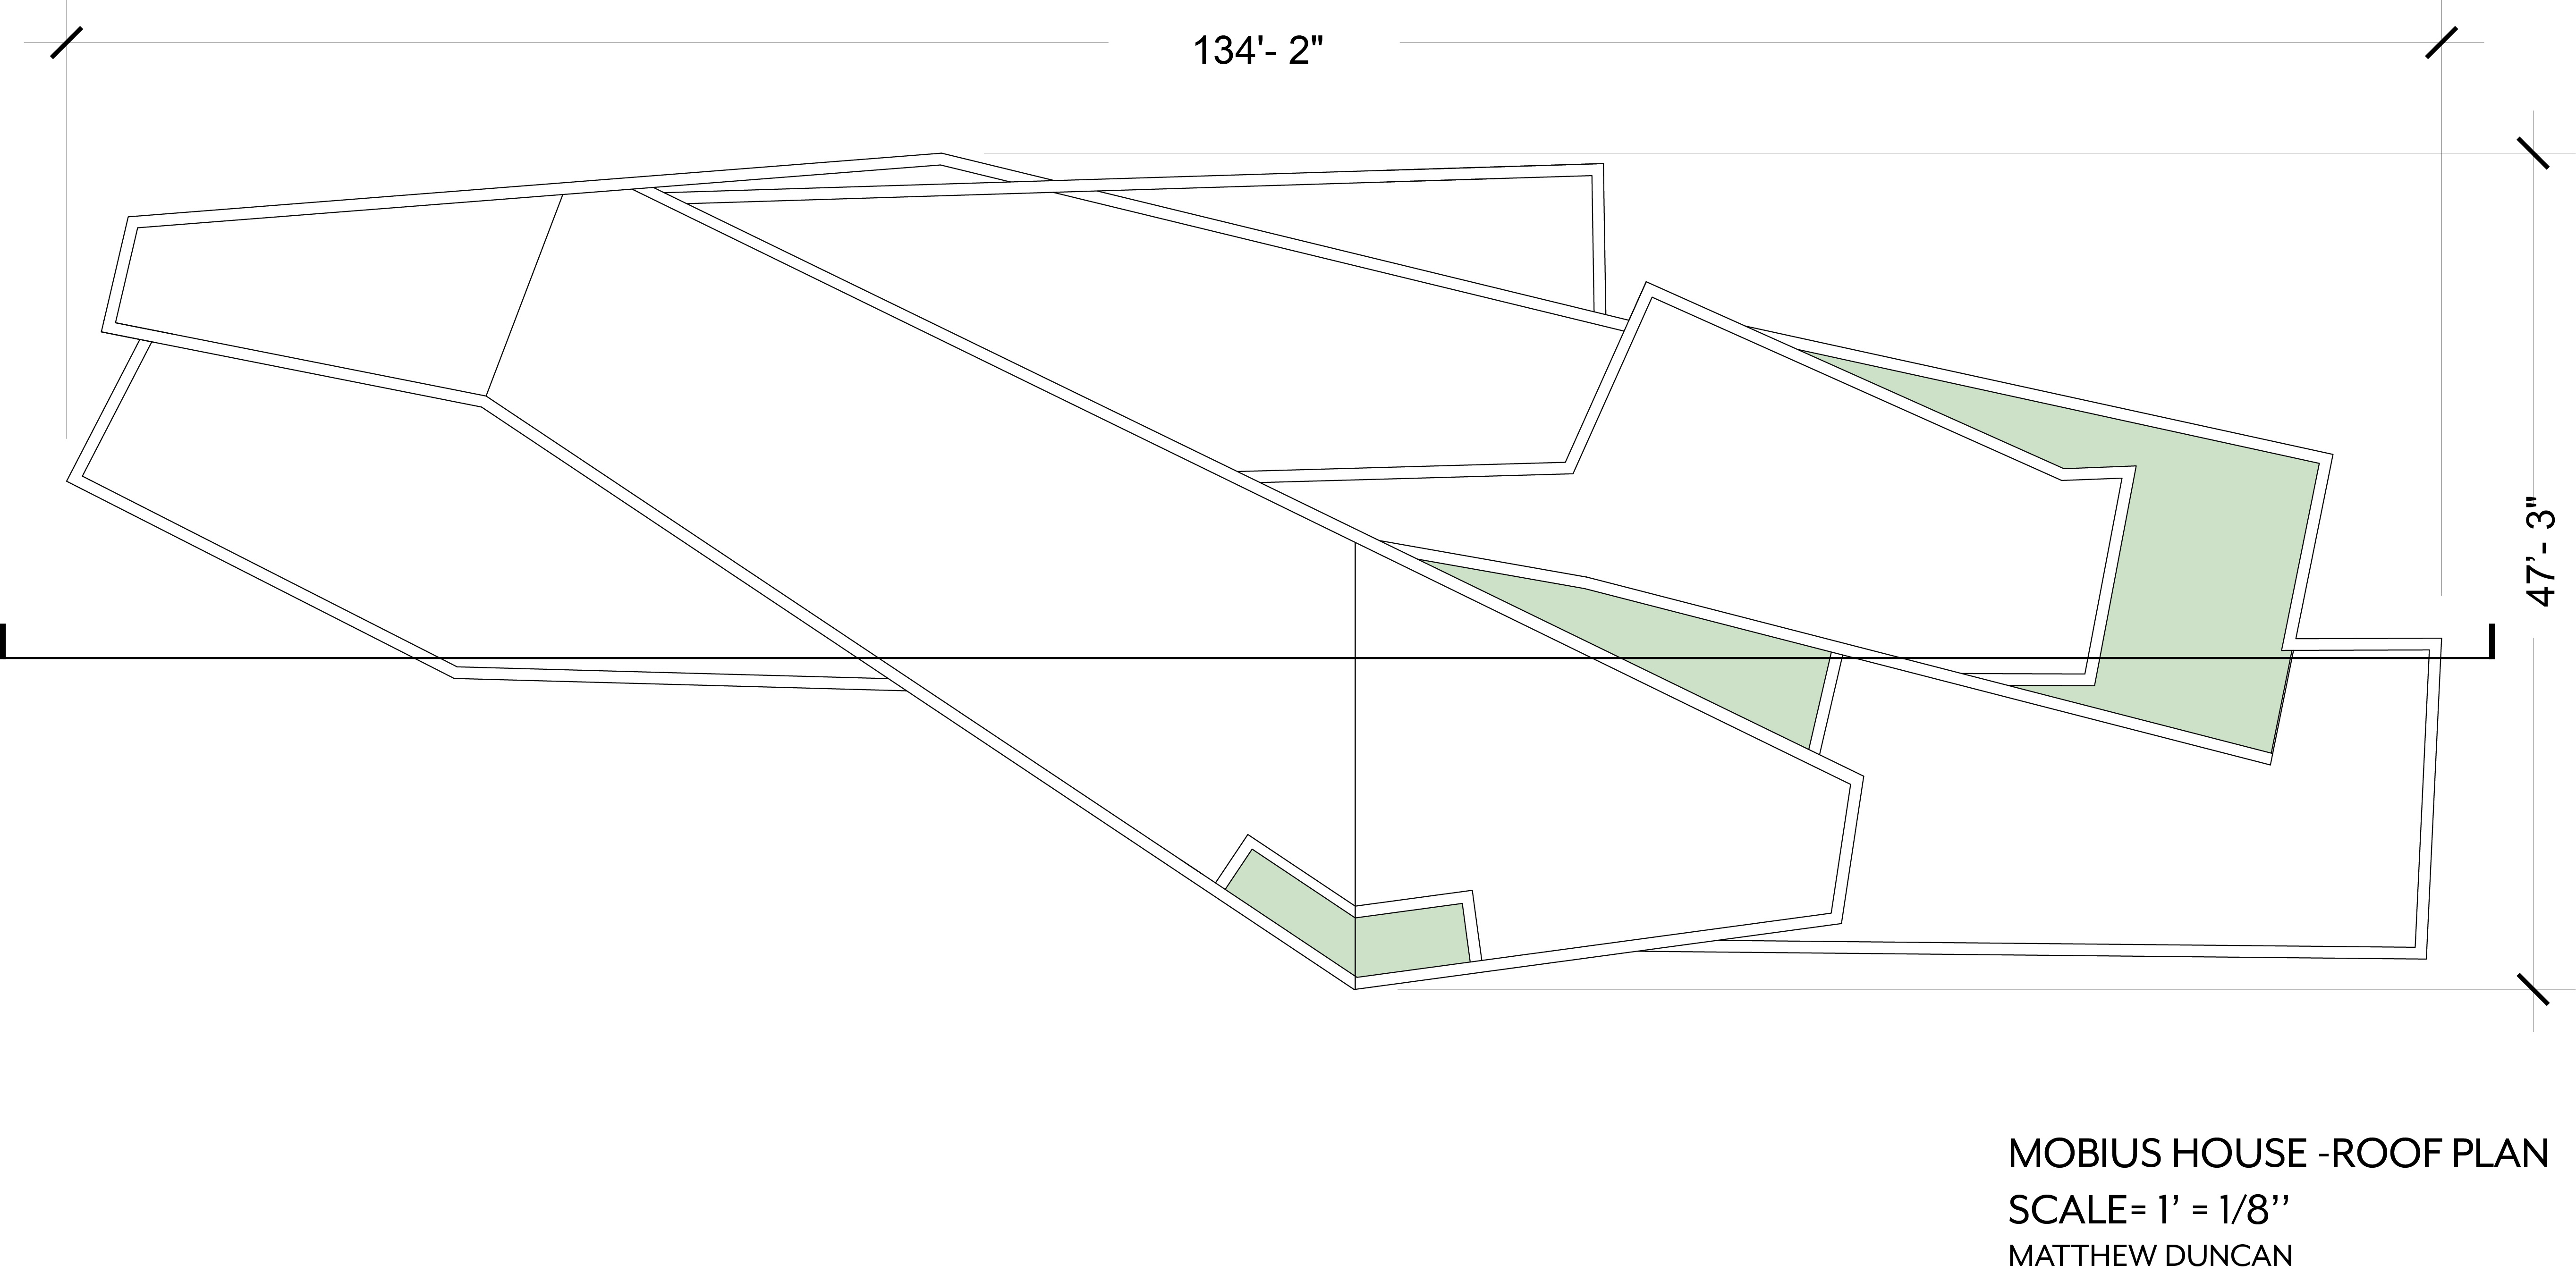 A4 ROOF PLAN